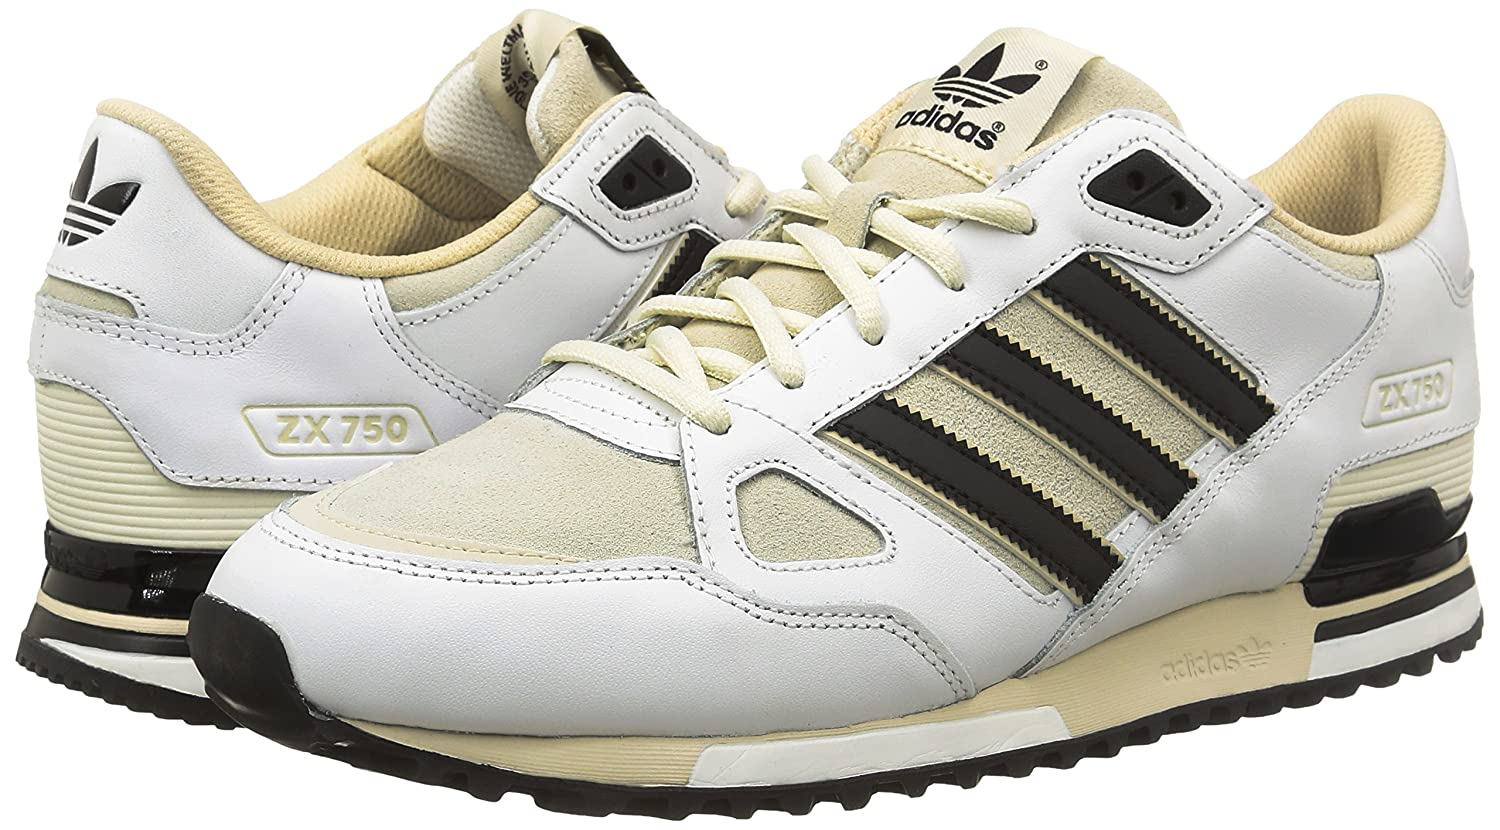 ce4f205e50b9c ... usa order adidas zx 750 mens trainers footwear white core black bone  13.5 uk 49 1 ...